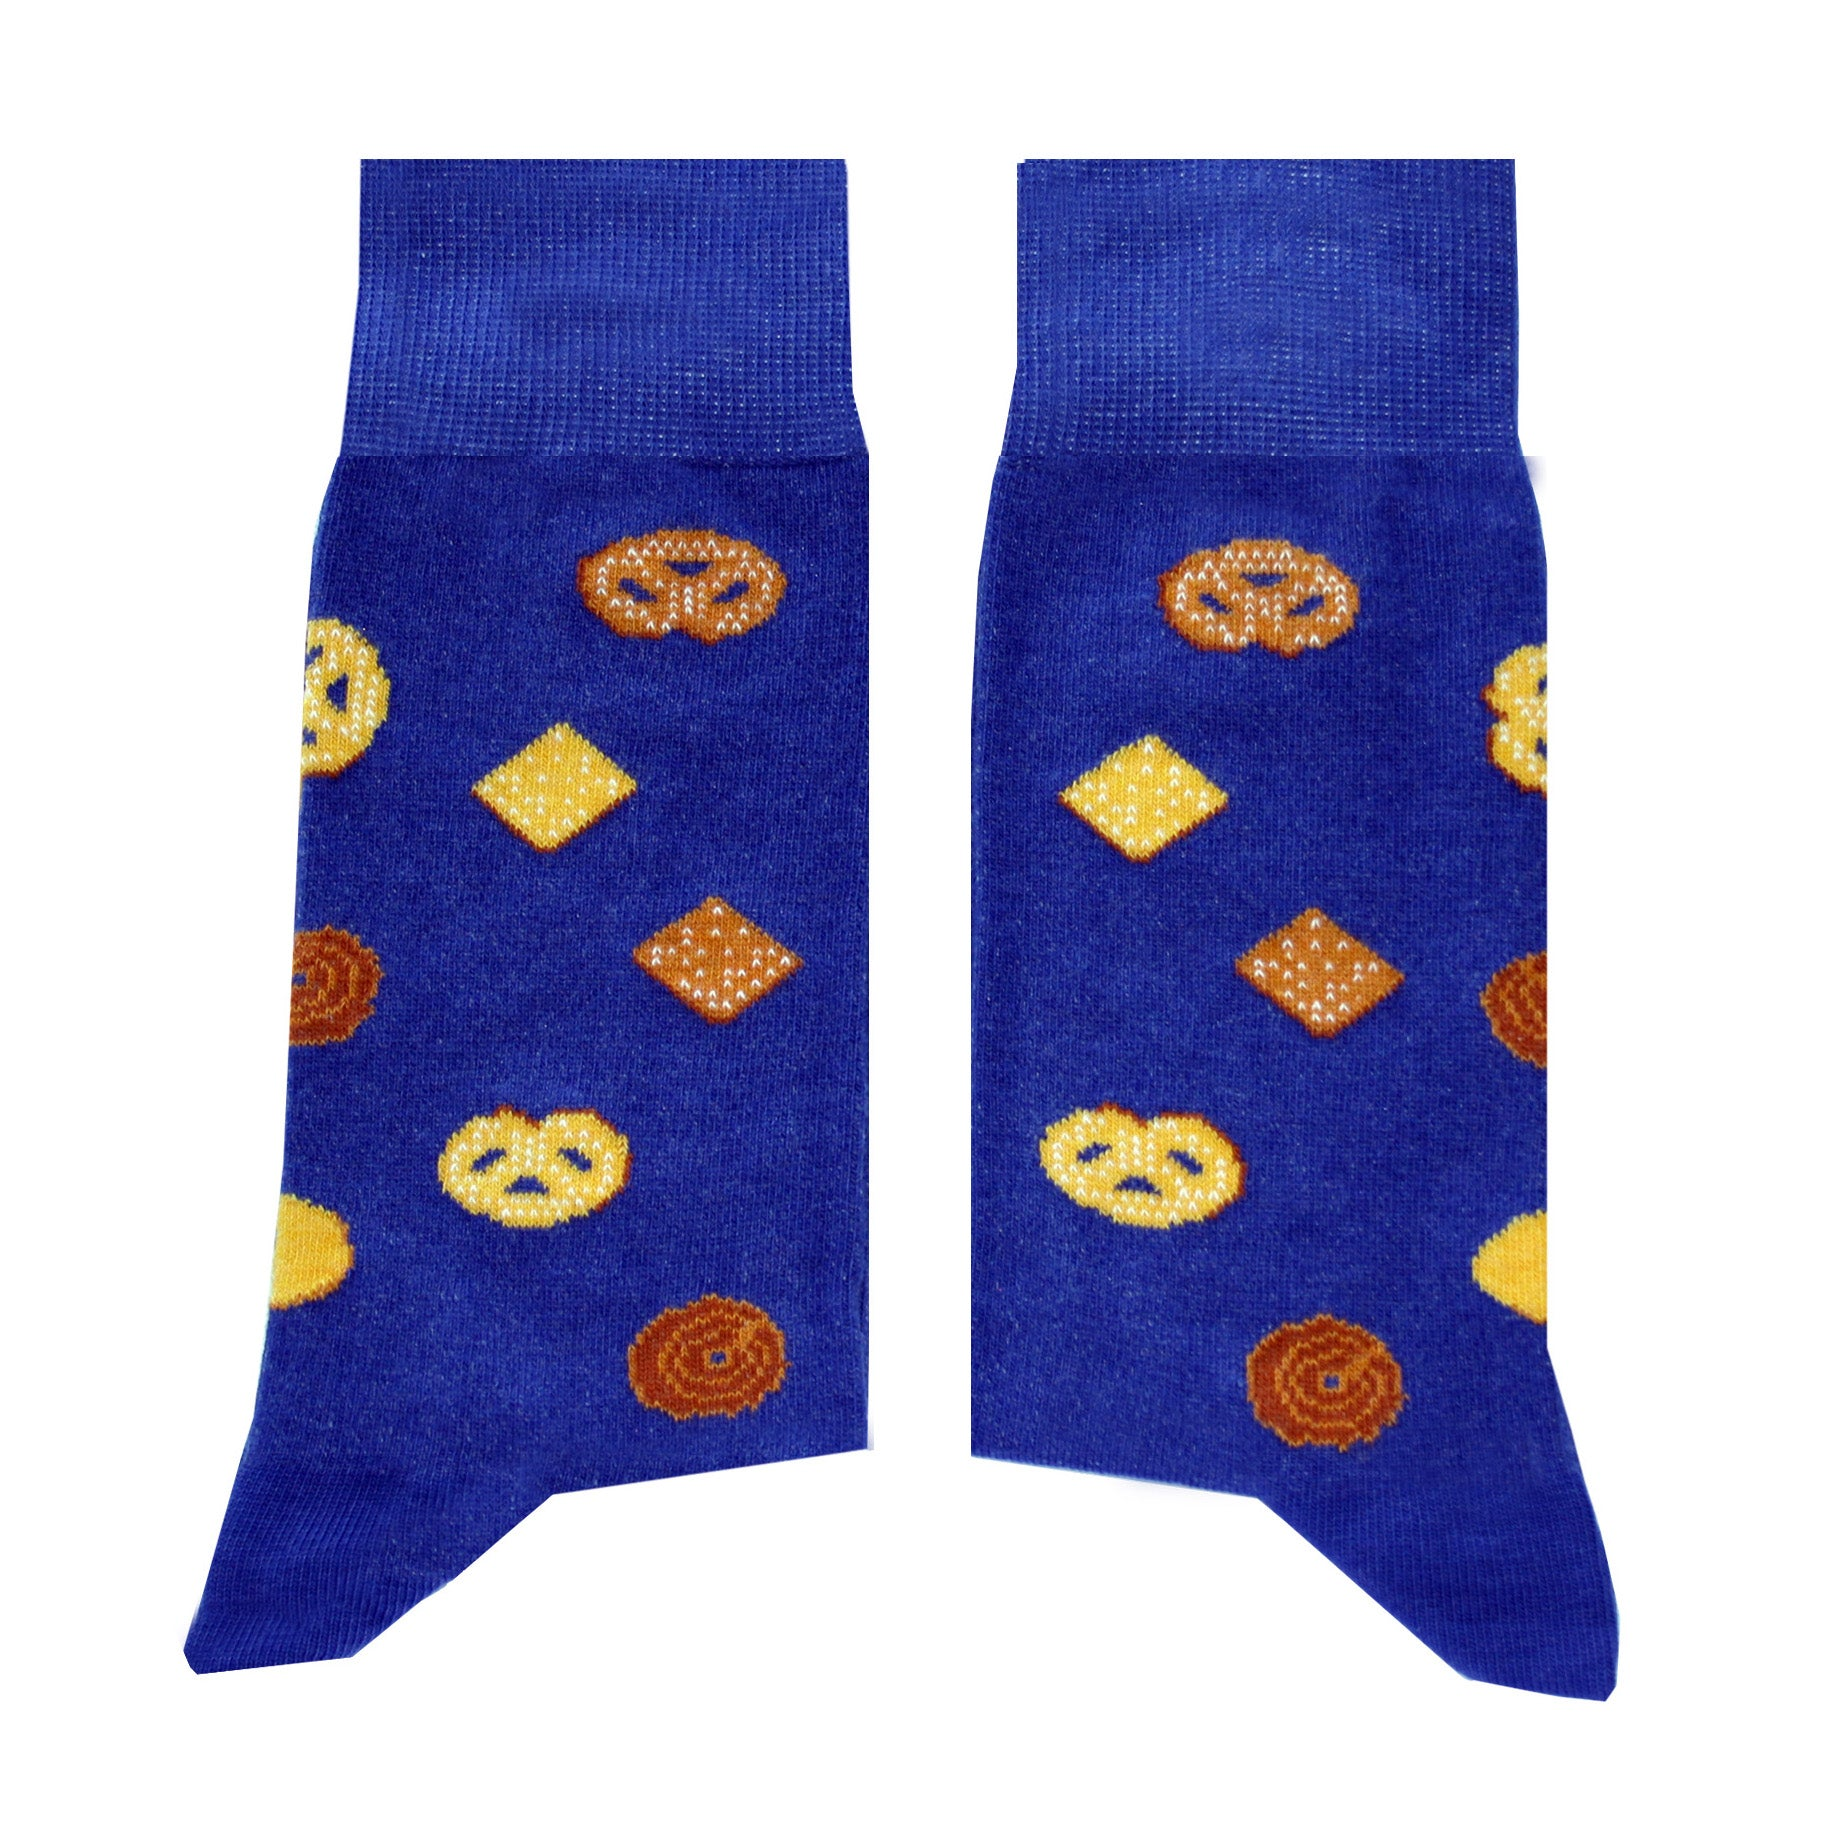 Biscuits Socks